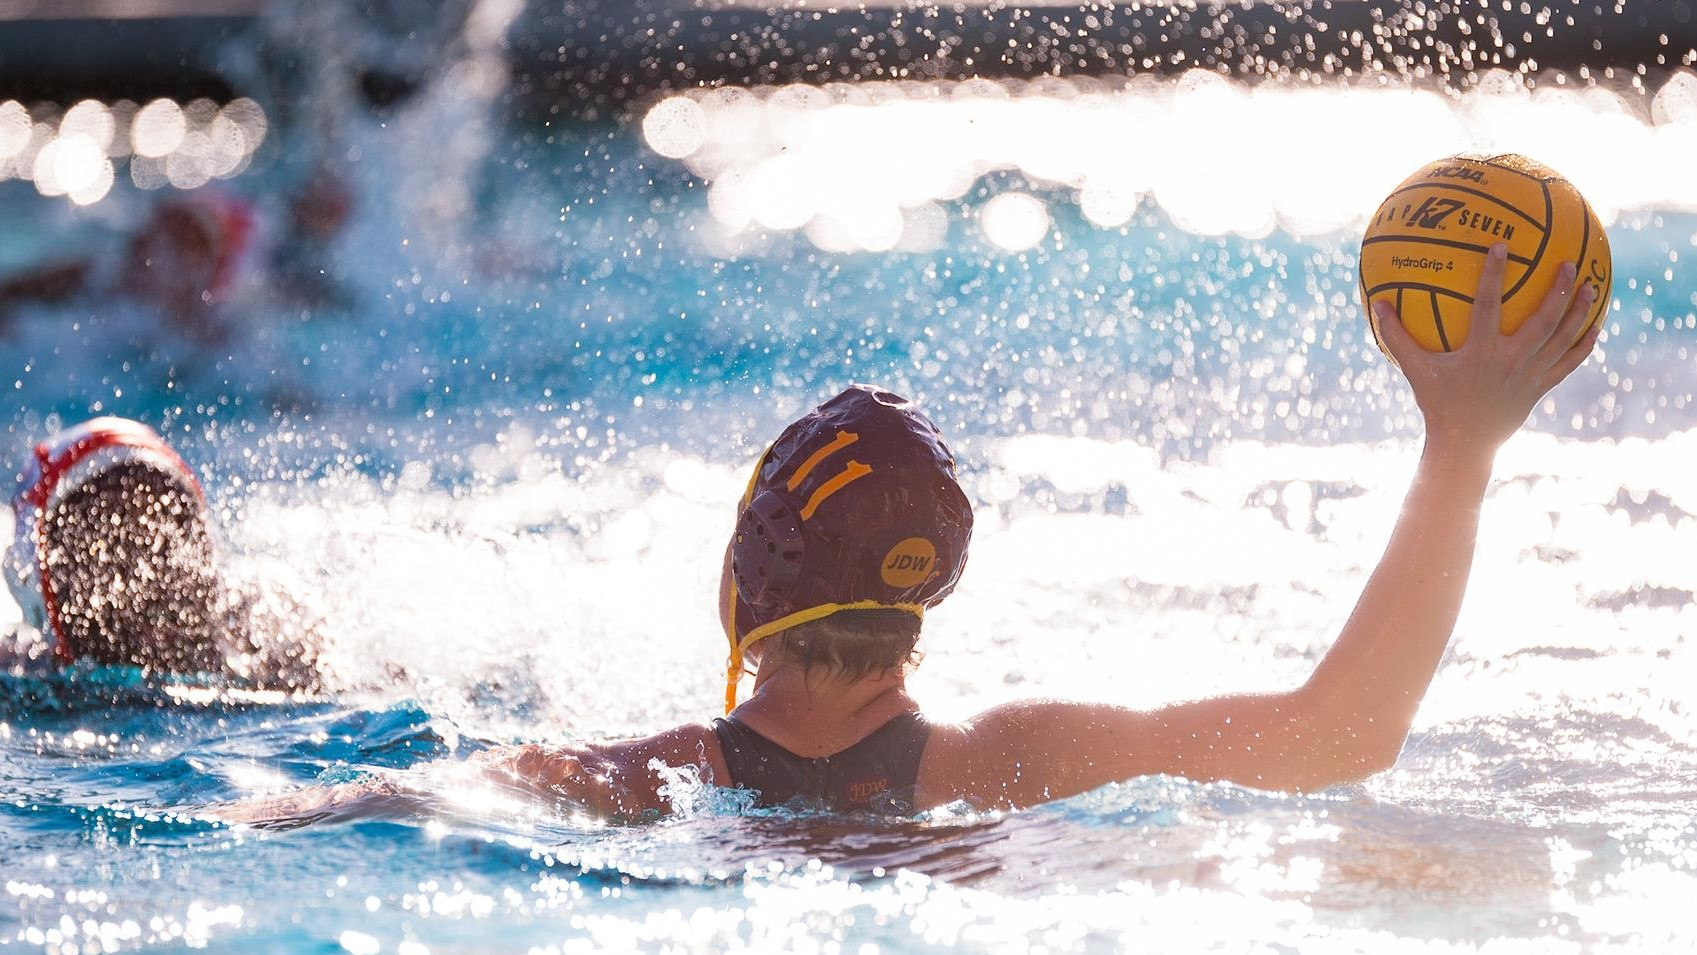 Usc_womens_water_polo_princeton_2017_mcgillen_5178